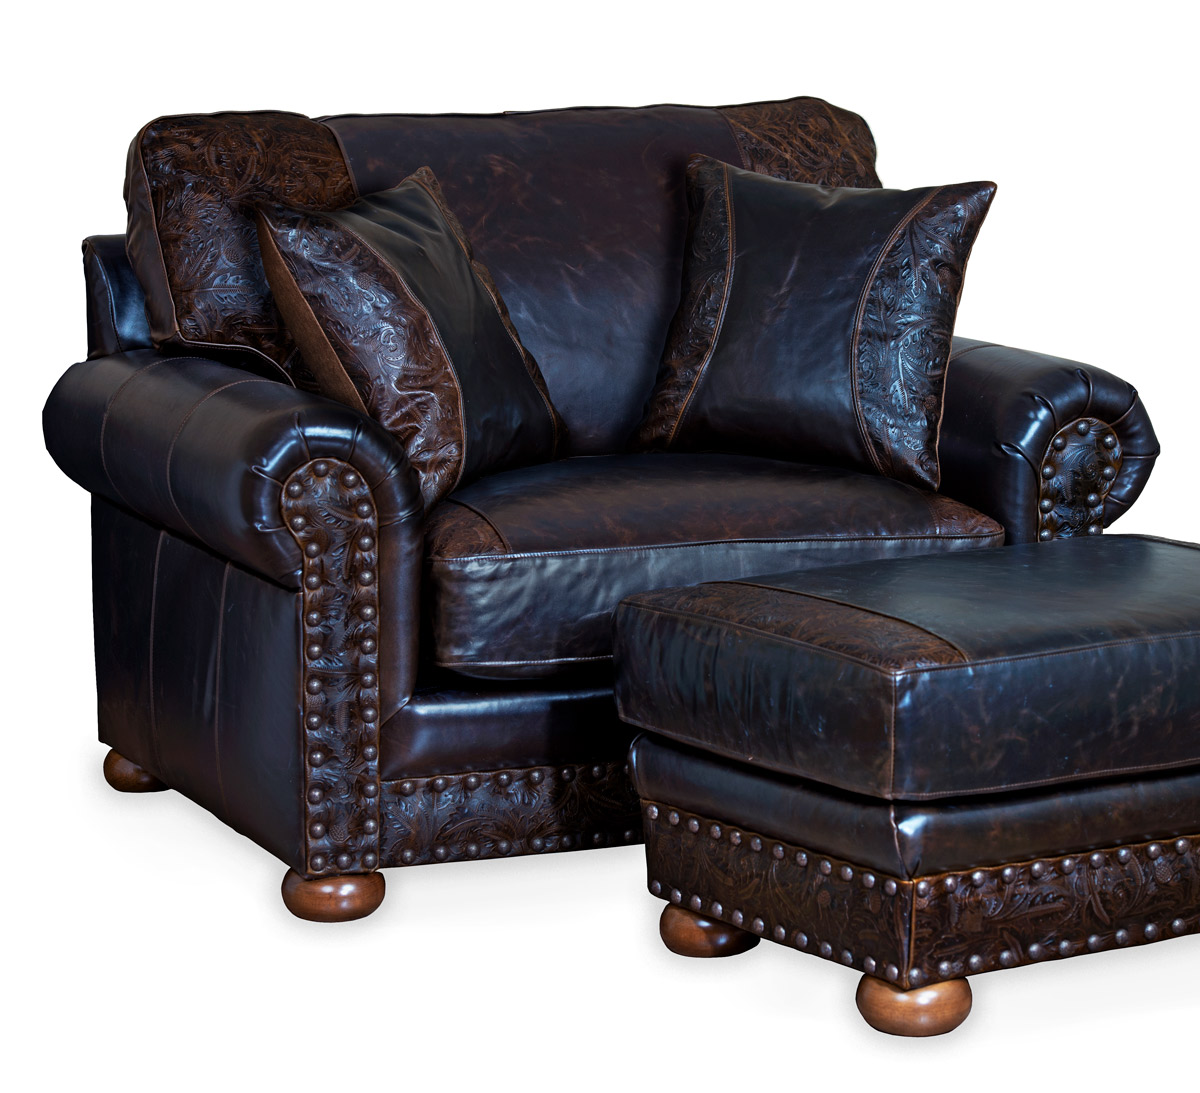 The American Outlaw Oversized Chair